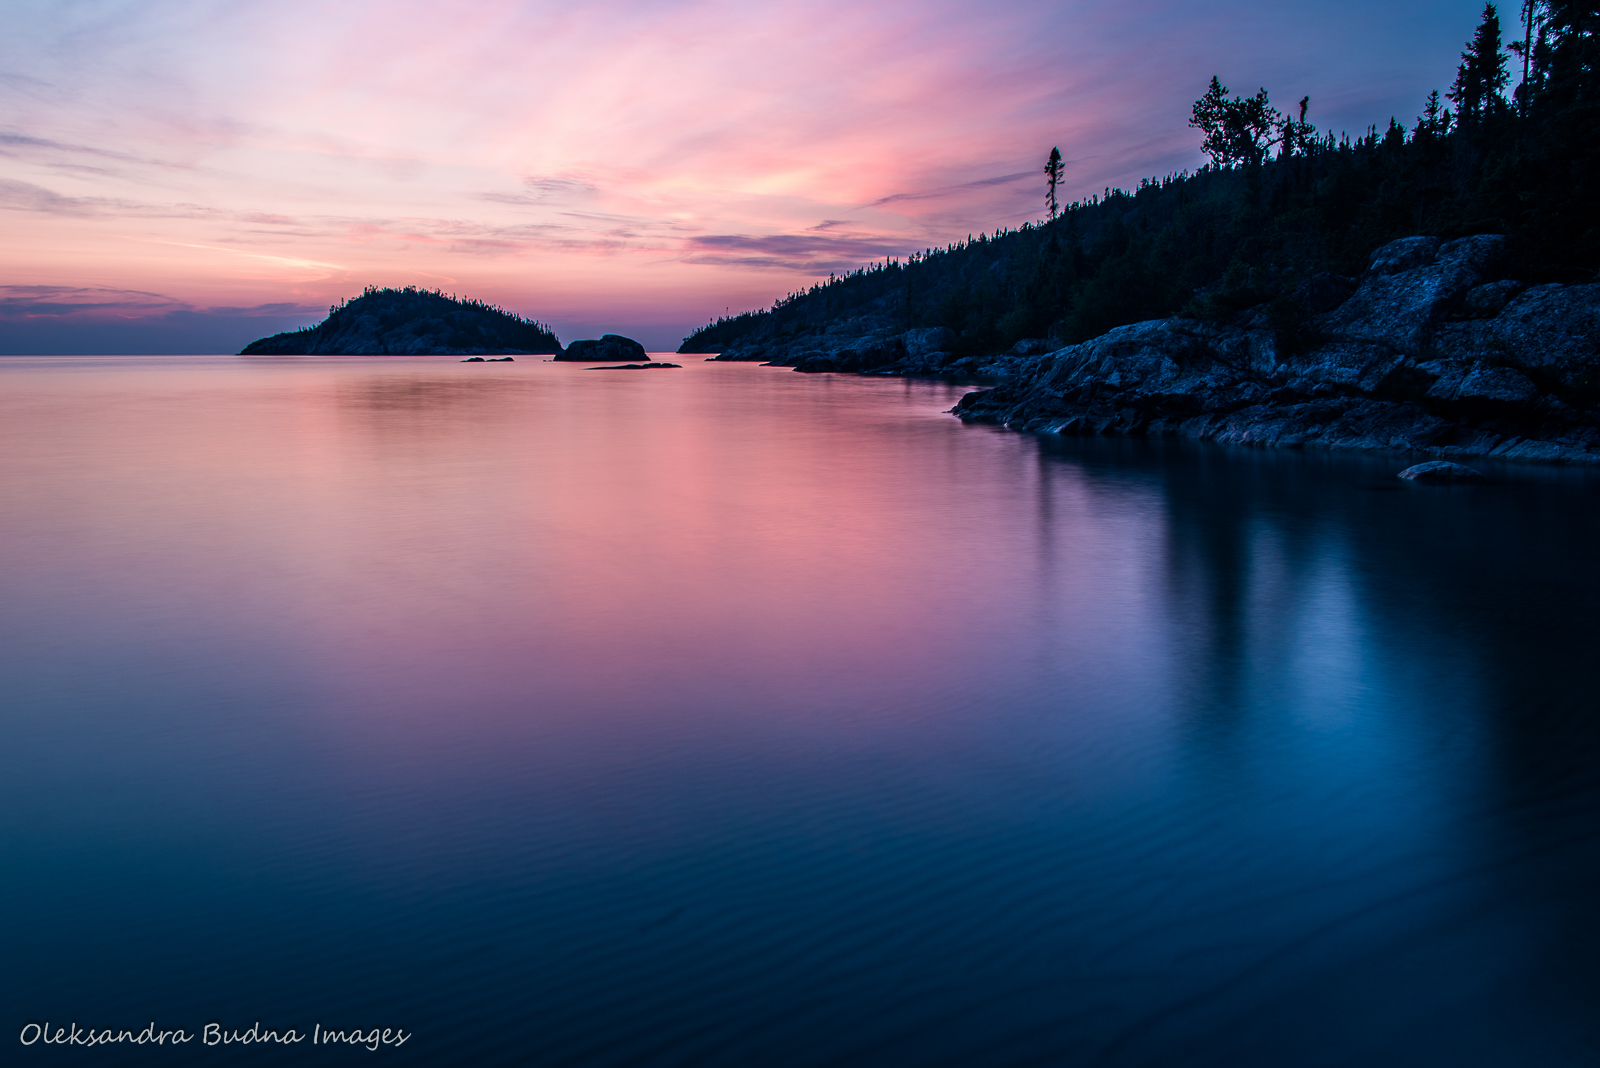 Sunset on Lake Superior at Fisherman's Cove in Pukaskwa